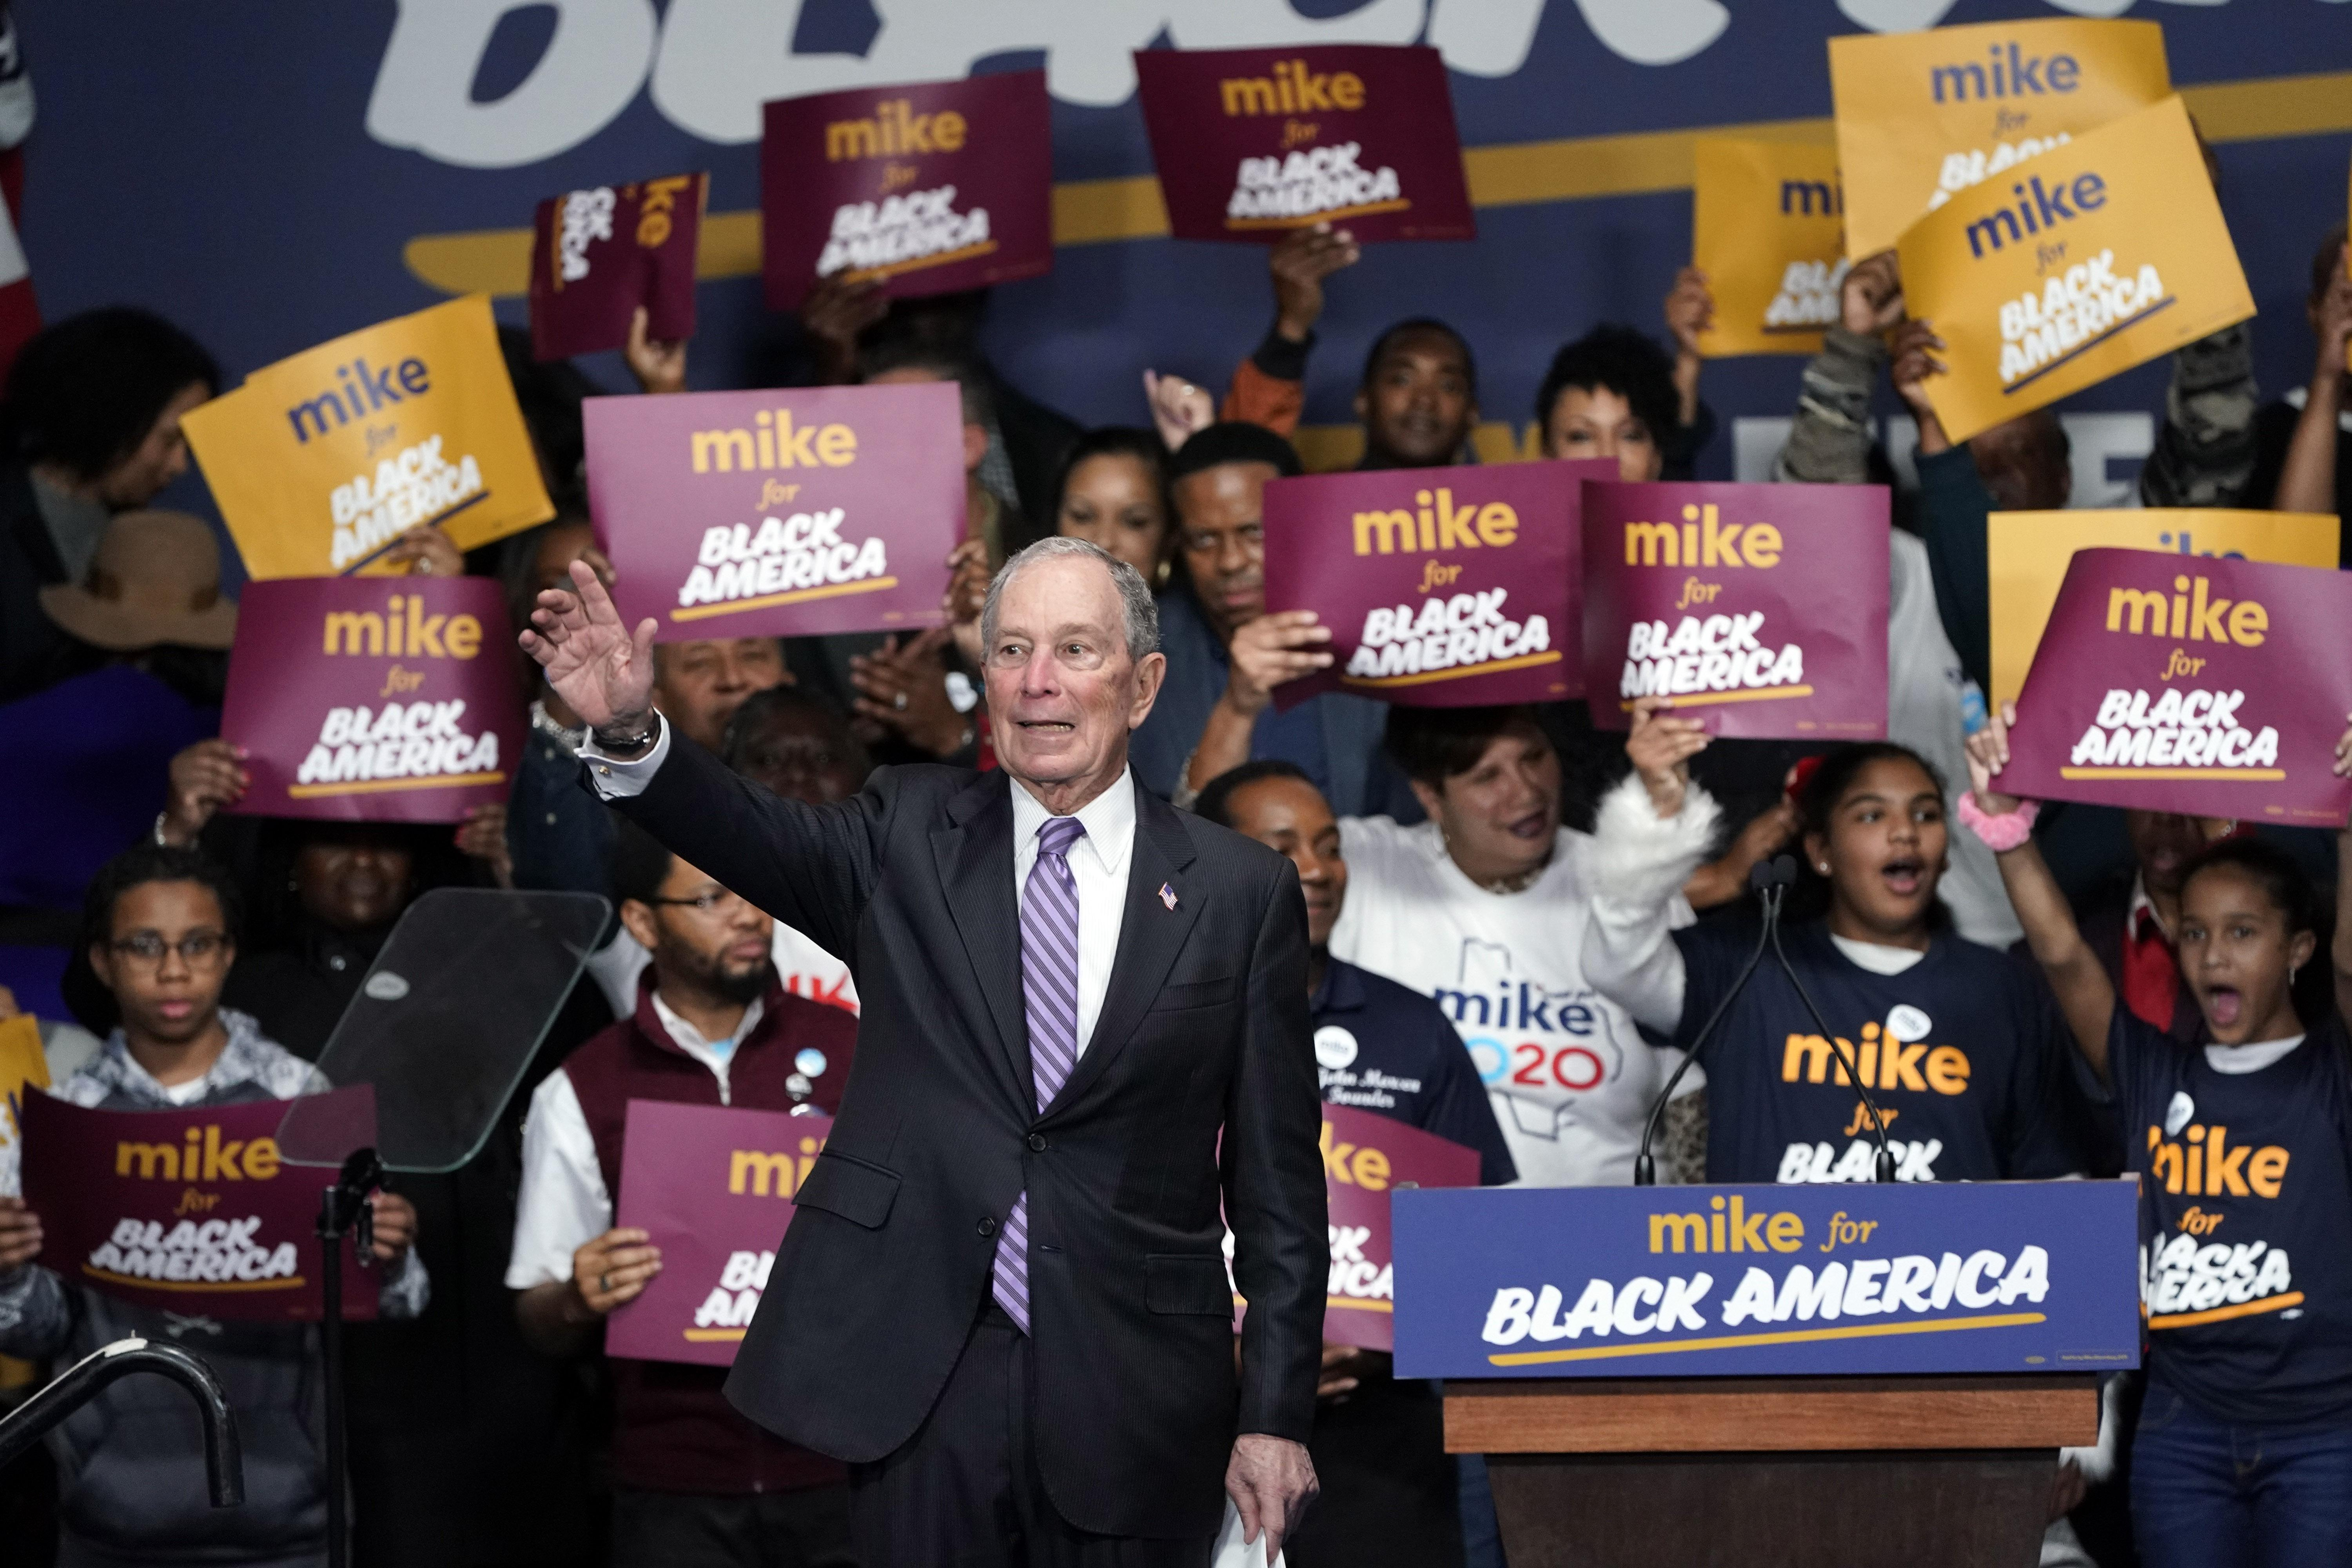 Mike Bloomberg has a terrible past. Will his money stop scrutiny of it?